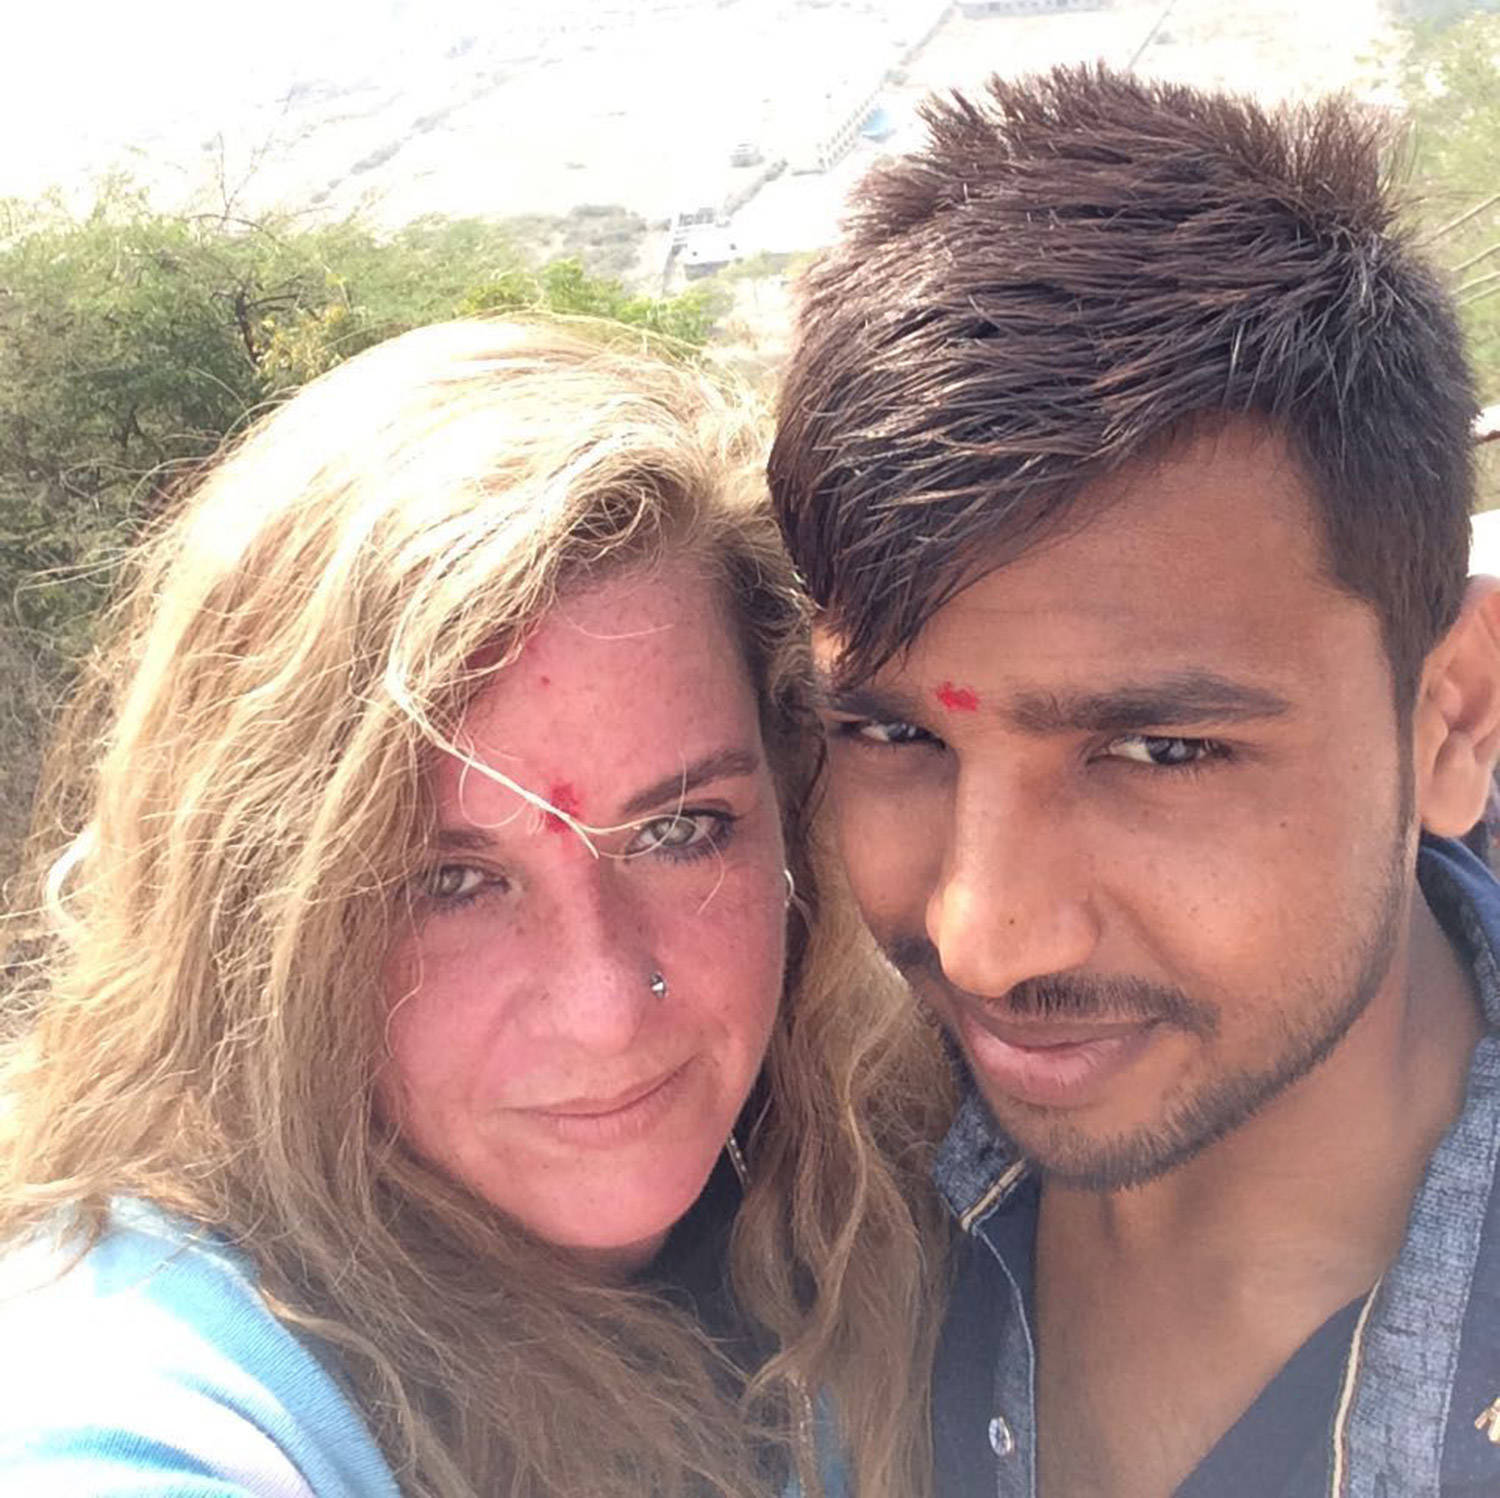 Meet The 41-Year-Old American Woman Who Married A 23-Year-Old Ahmedabad Slum-Dweller -1474